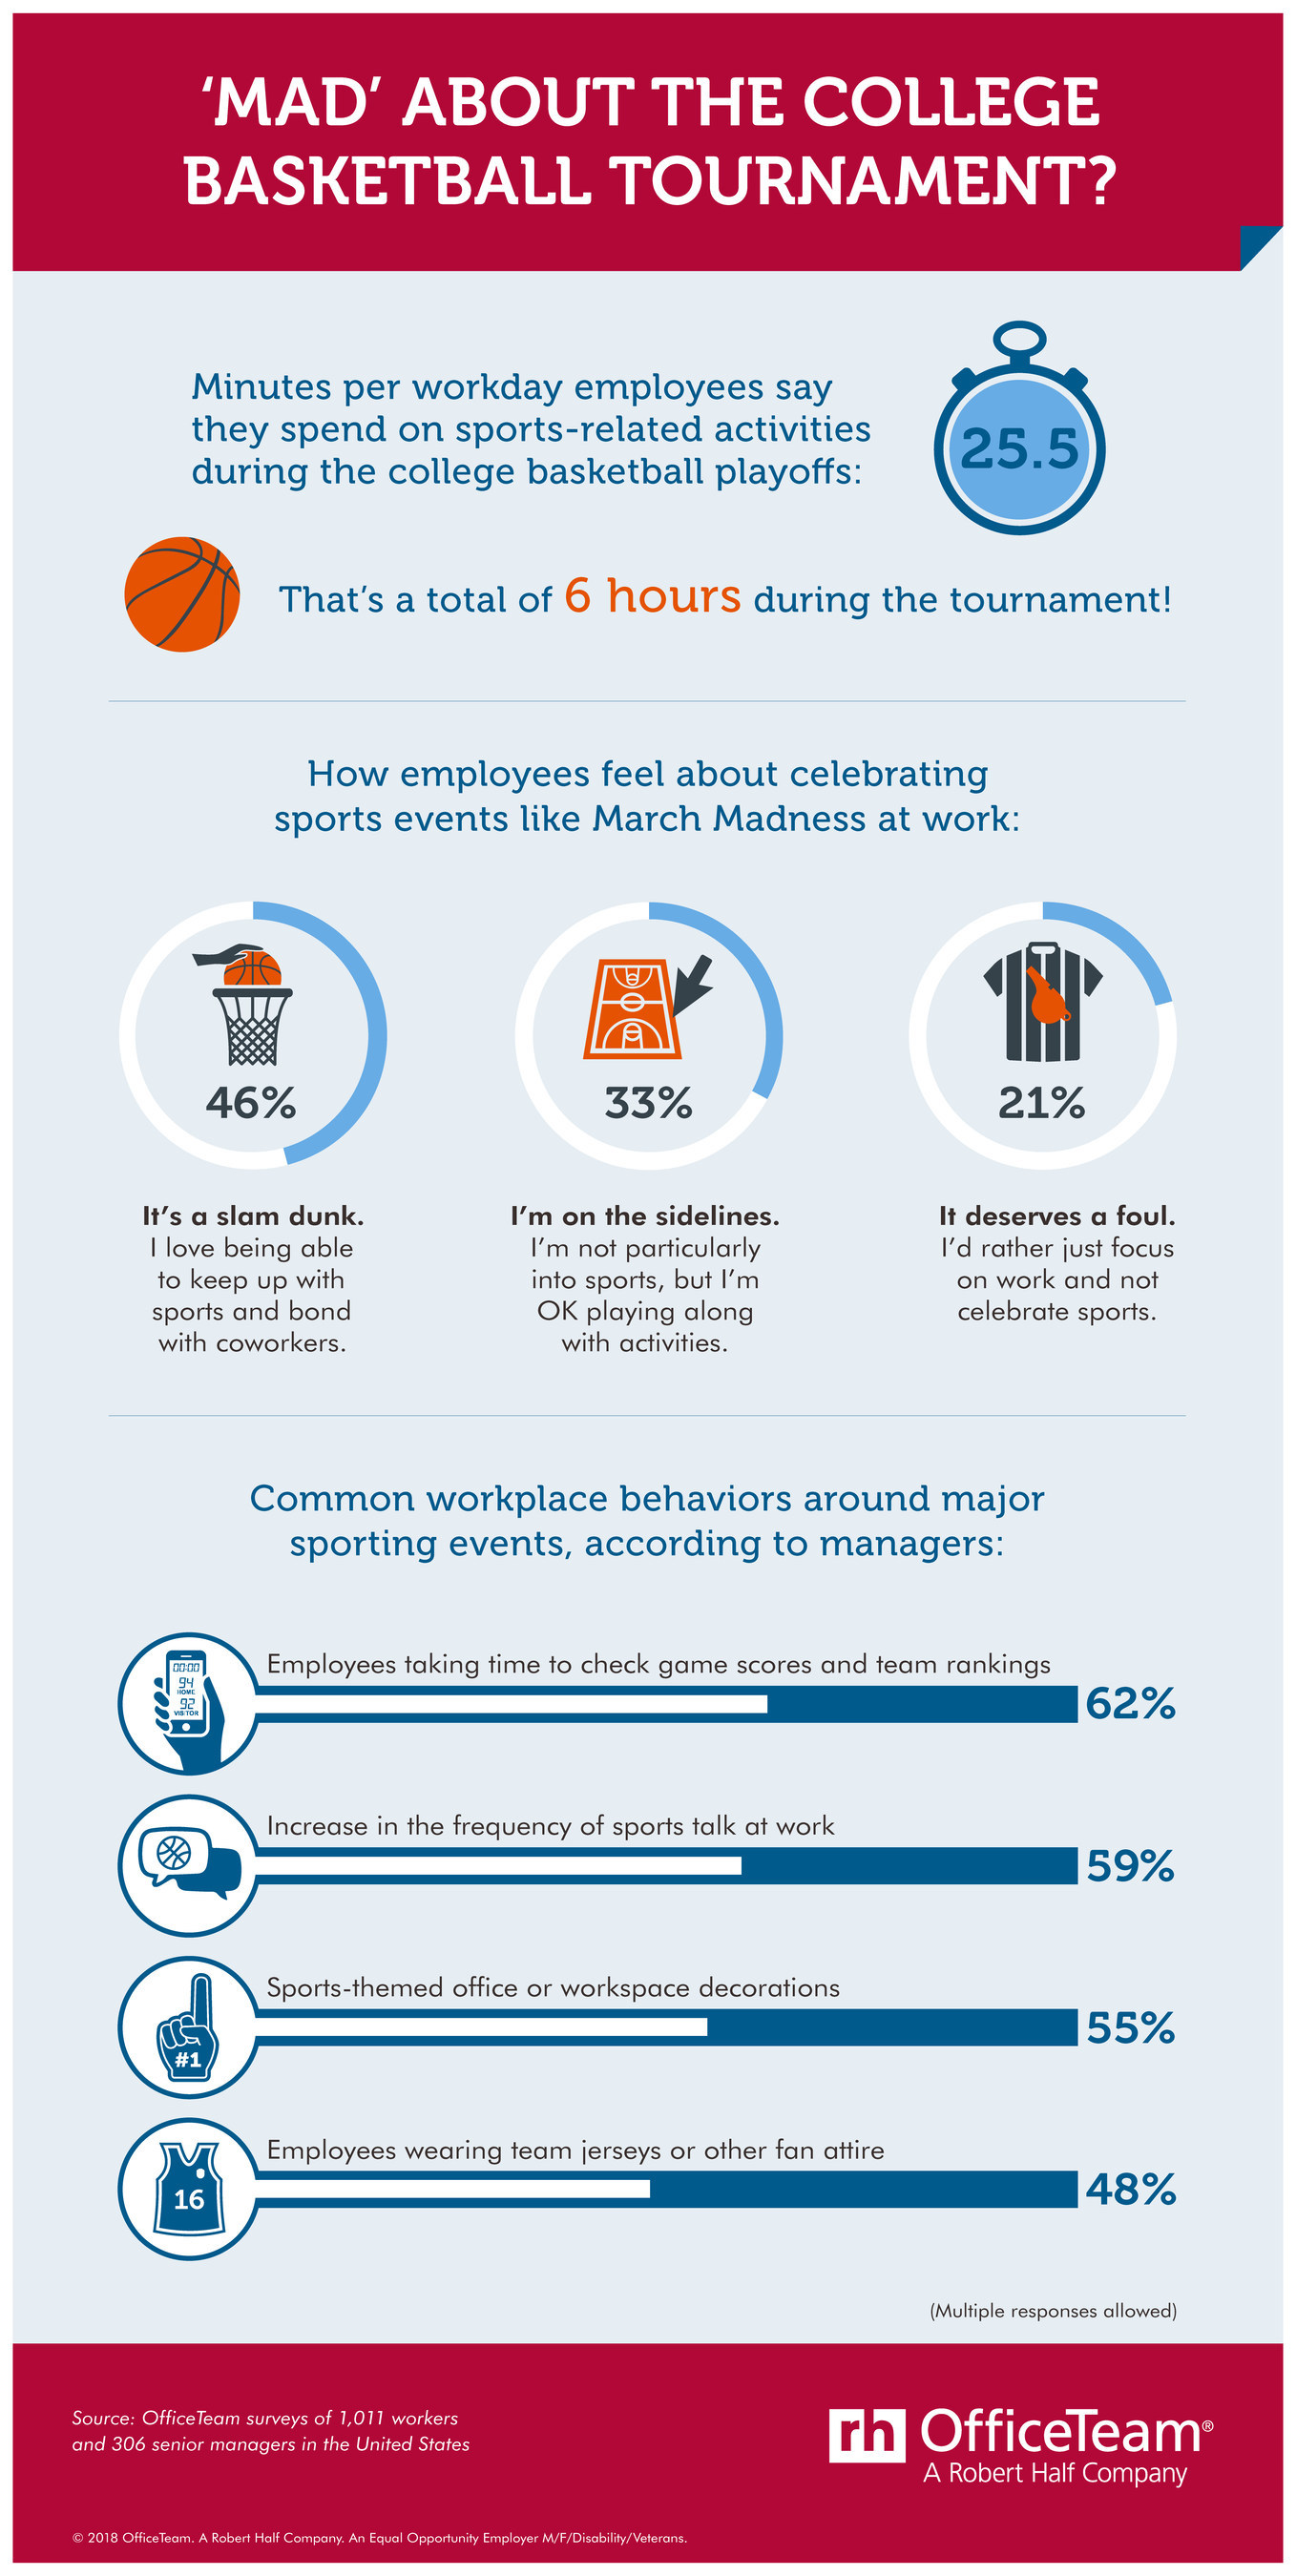 According to an OfficeTeam survey, employees spend 25.5 minutes per workday on sports-related activities during the college basketball playoffs. That's a total of 6 hours during the tournament. See the full infographic here: https://www.roberthalf.com/blog/management-tips/mad-about-the-college-basketball-tournament.